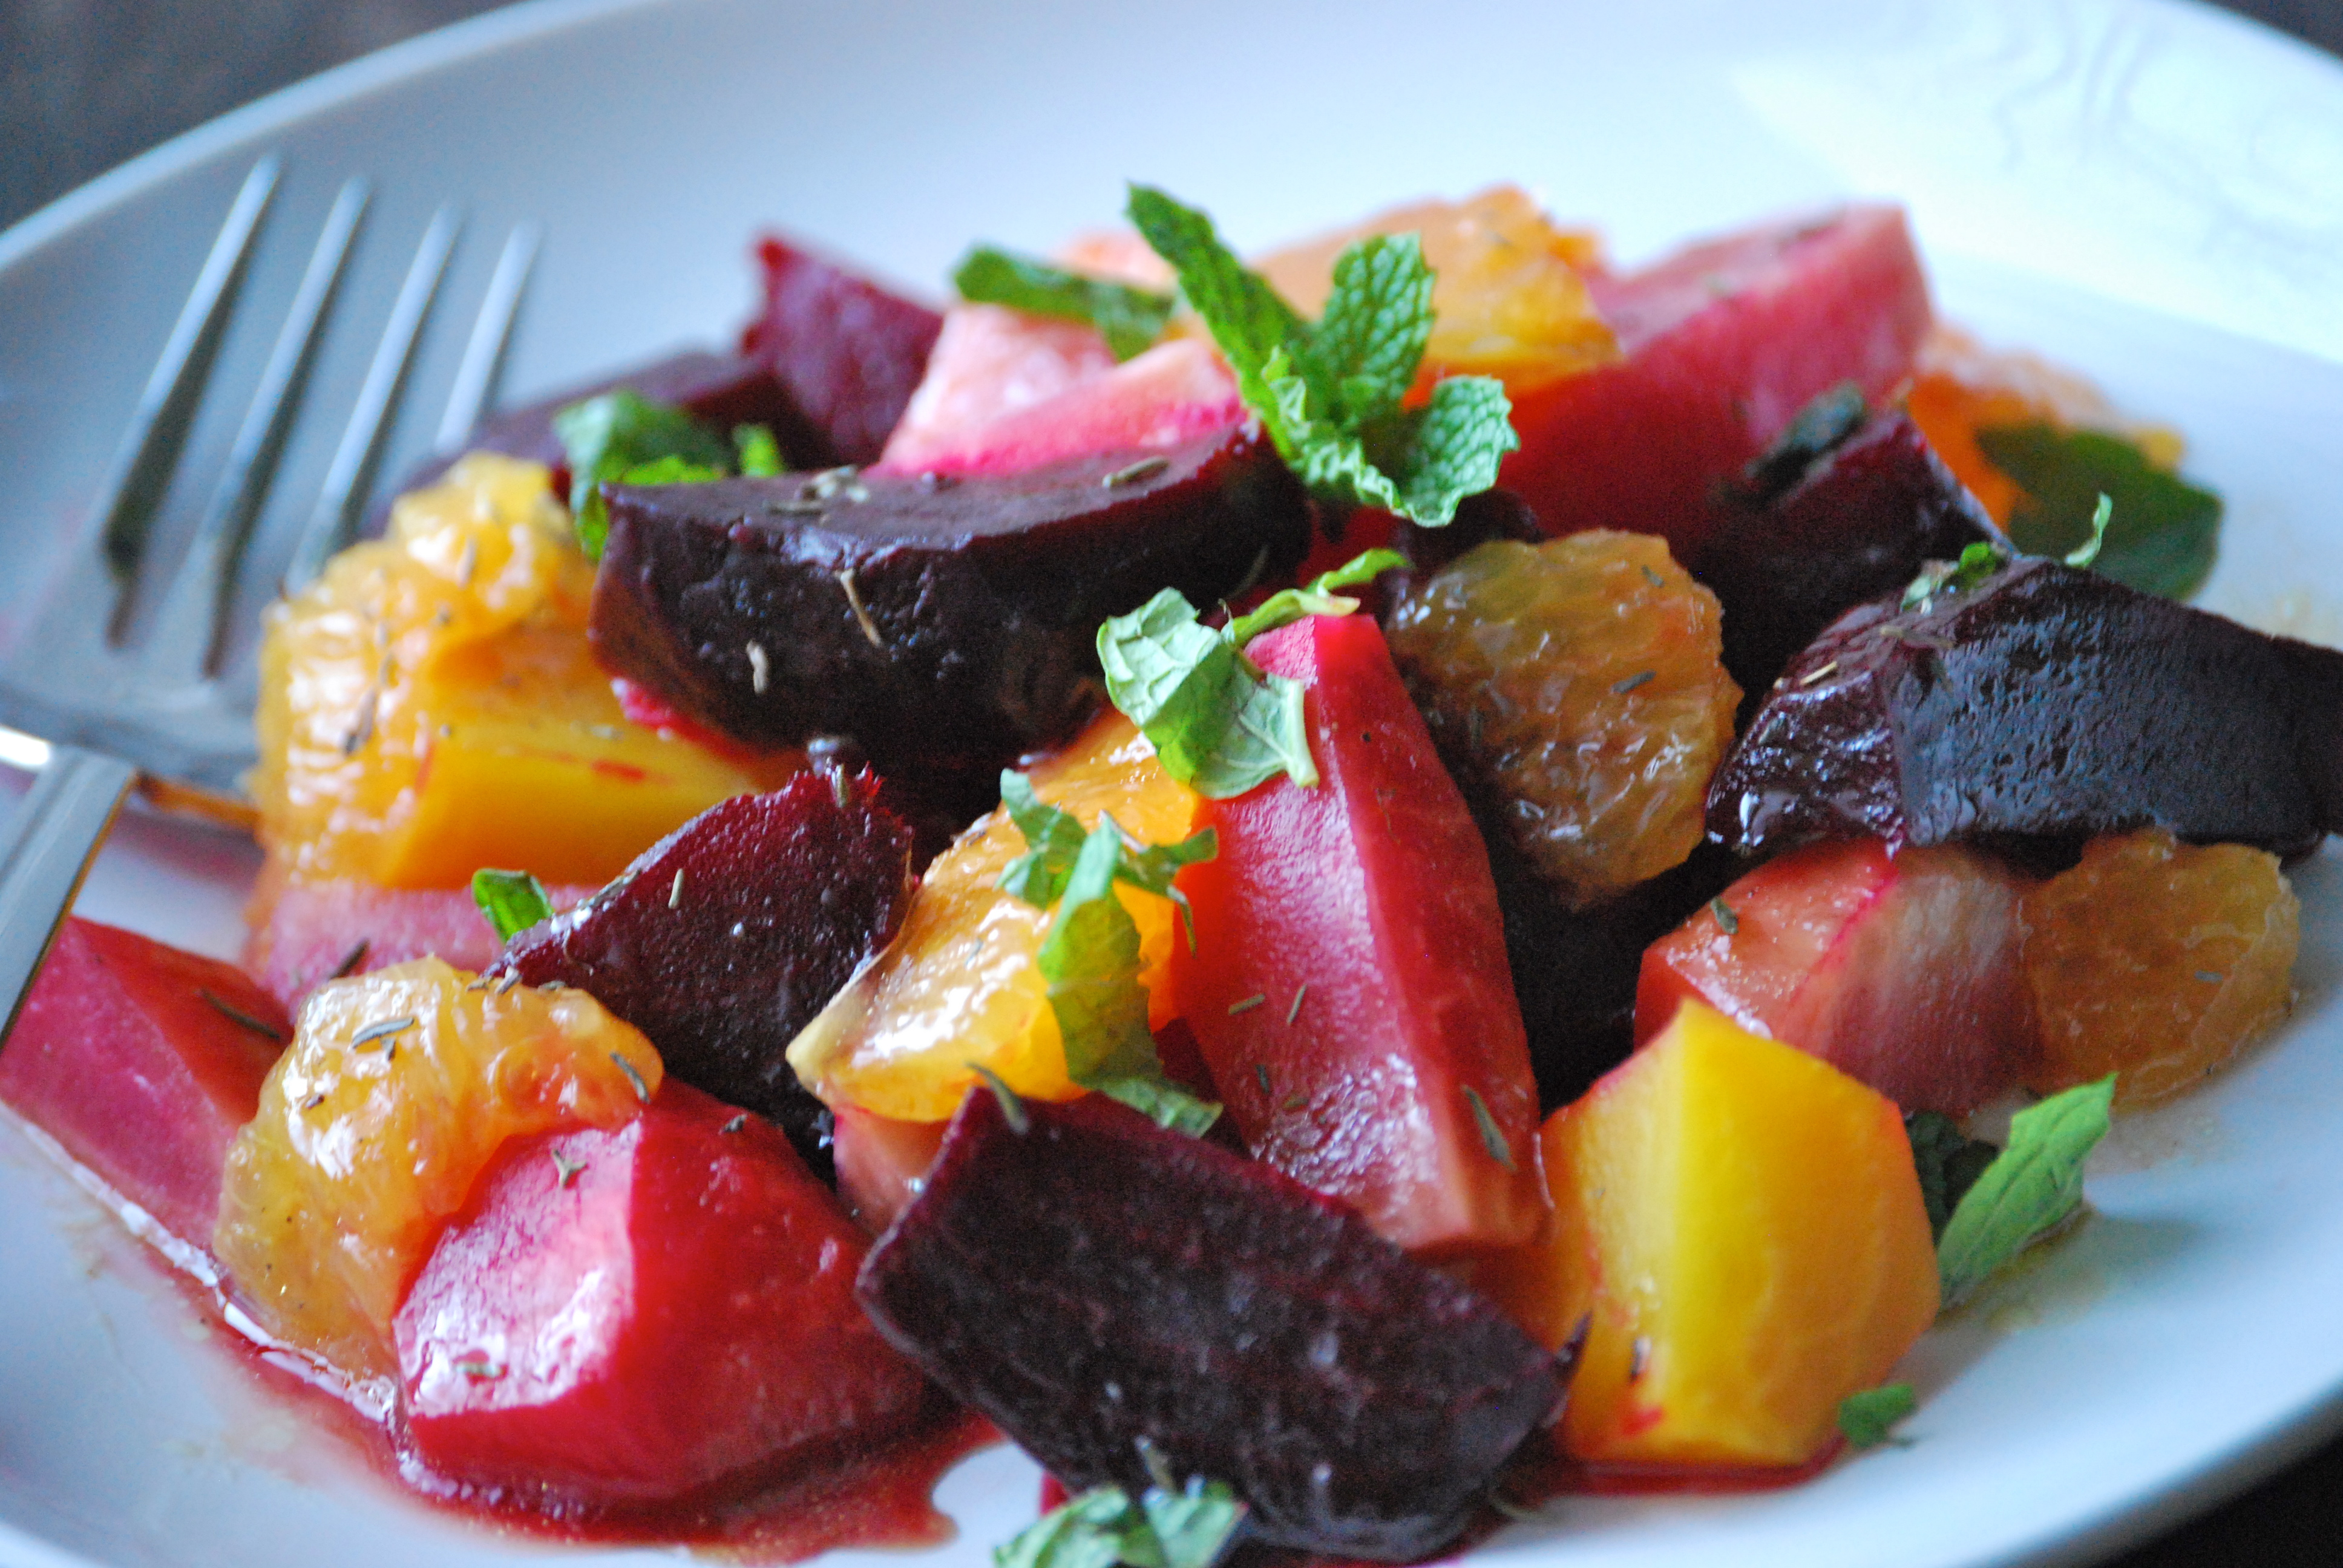 Roasted Beets with Orange and Mint | Relishing It